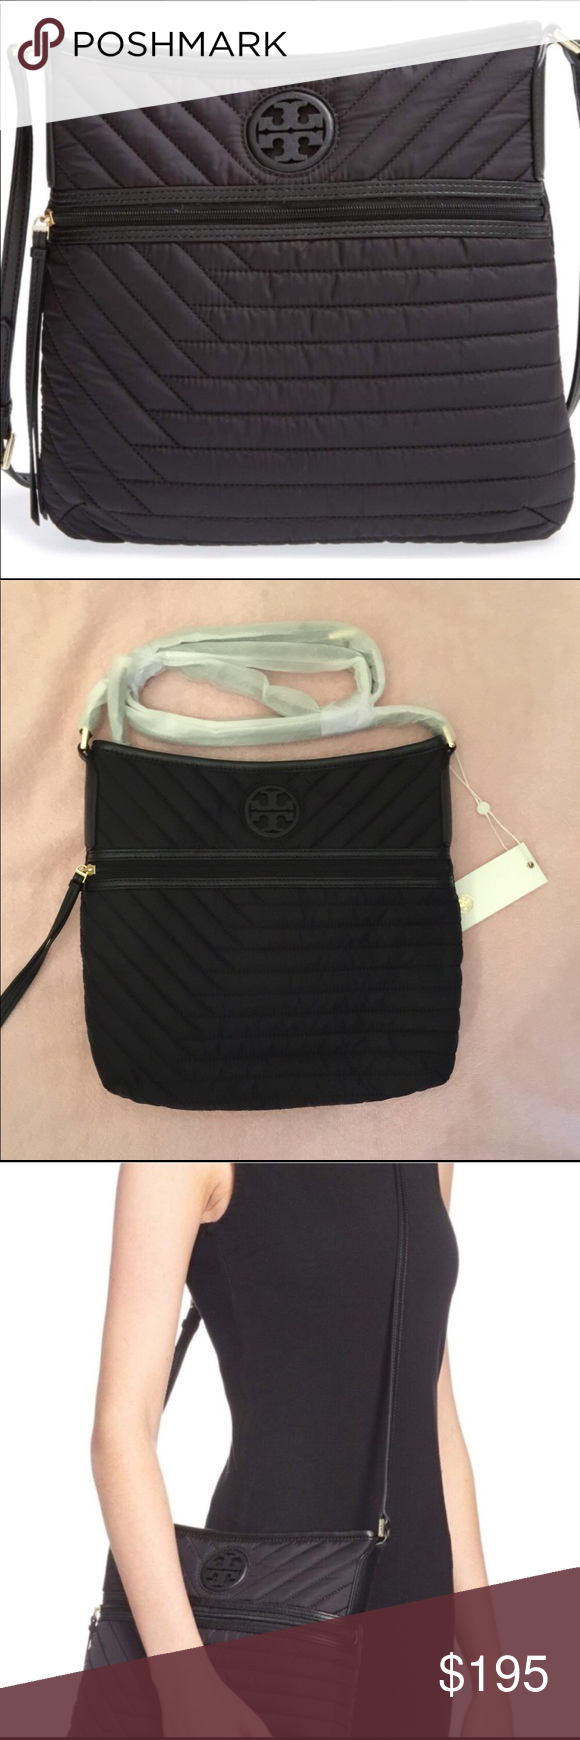 3723fc95be4 Tory Burch Quilted Nylon Swingpack 💯% authentic Tory Burch Quilted Nylon  Swingpack NWT iconic